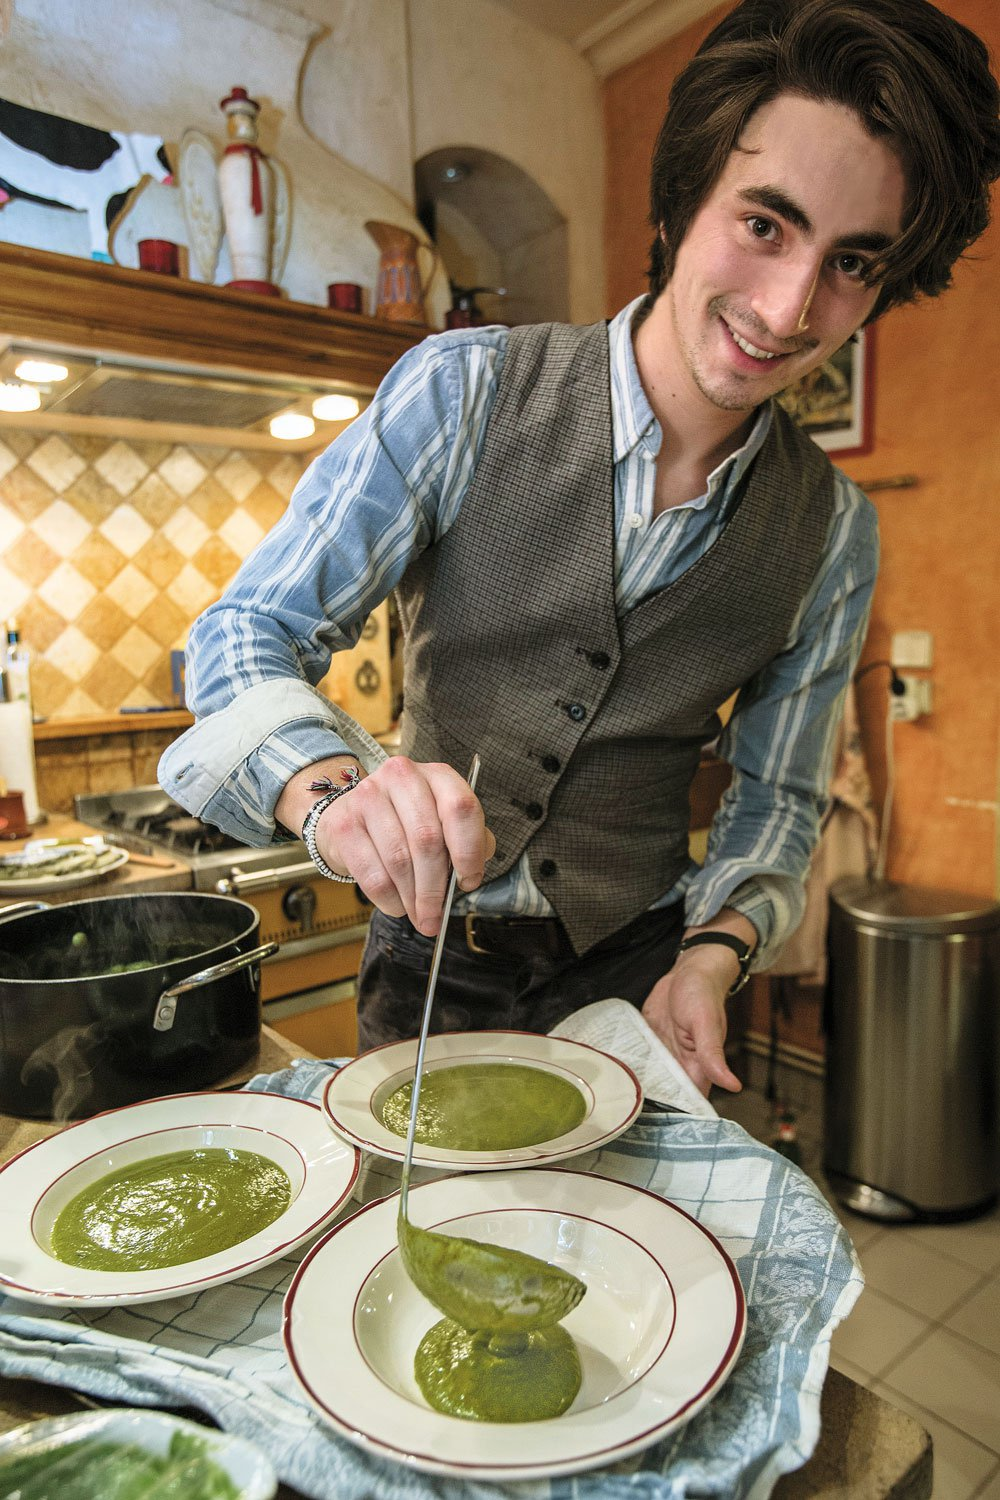 Alexis Marot spoons out watercress soup for the meal's first course. (Owen Franken)